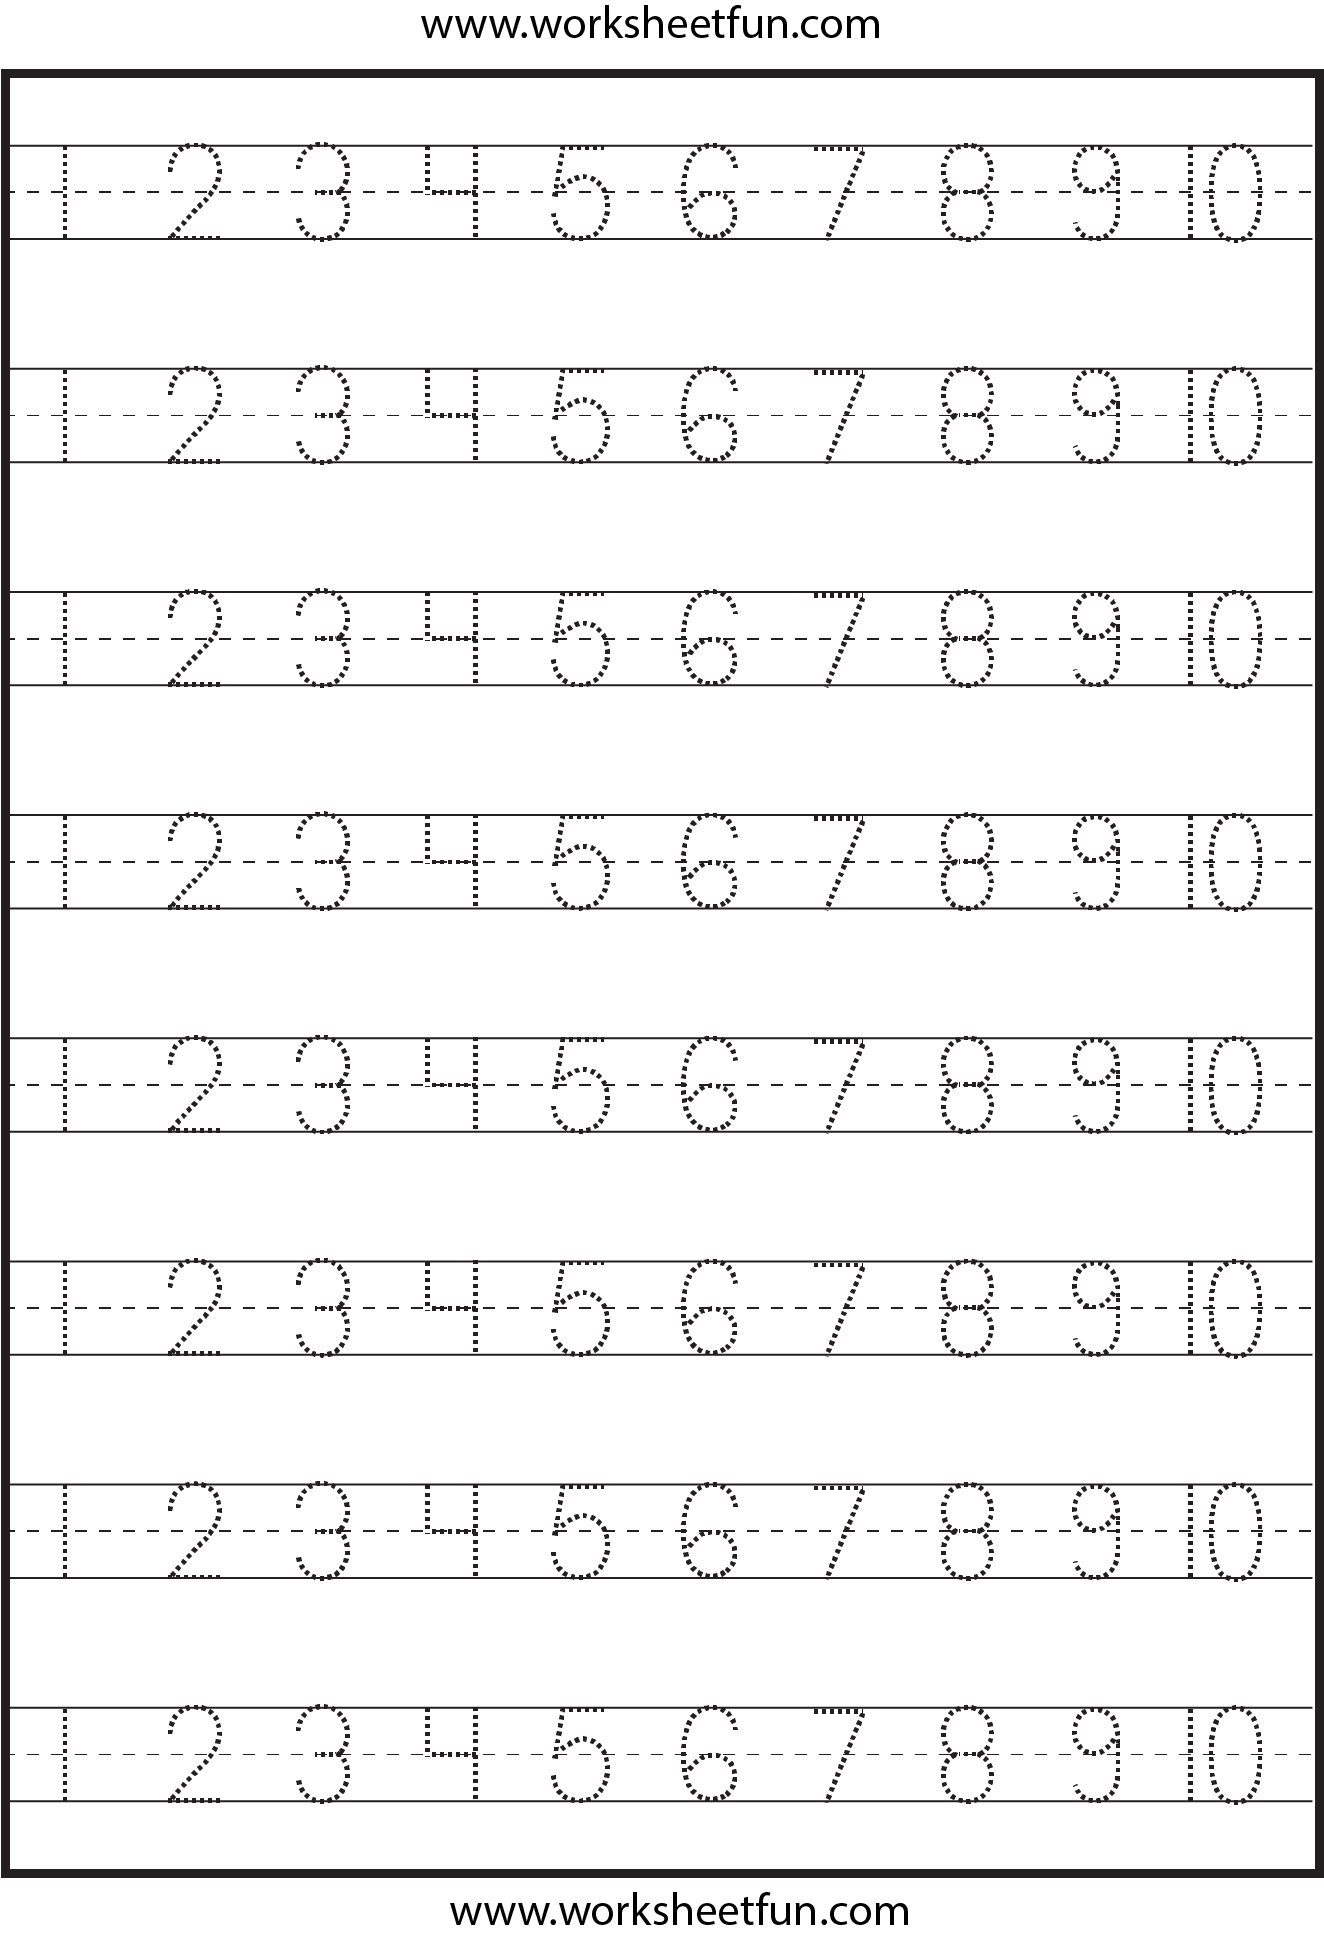 Worksheet Number Tracing Worksheets number tracing 1 10 worksheet free printable worksheets tracing